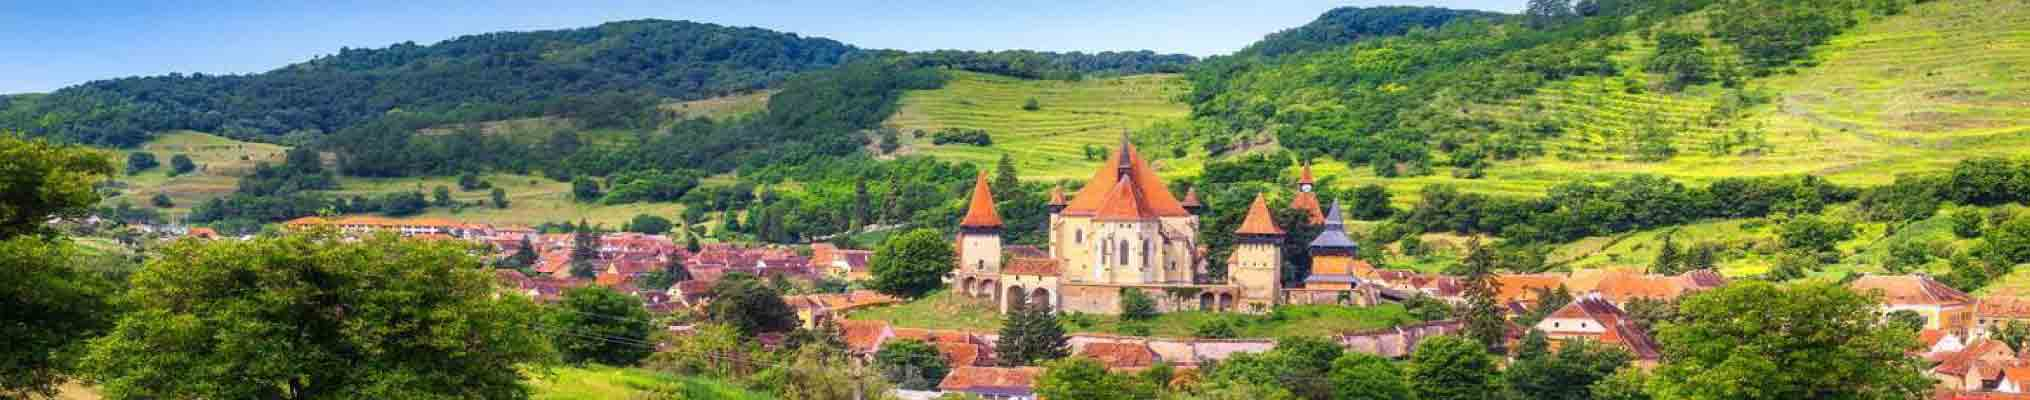 Transilvania Sibiu judet romania central transylvania fortified church